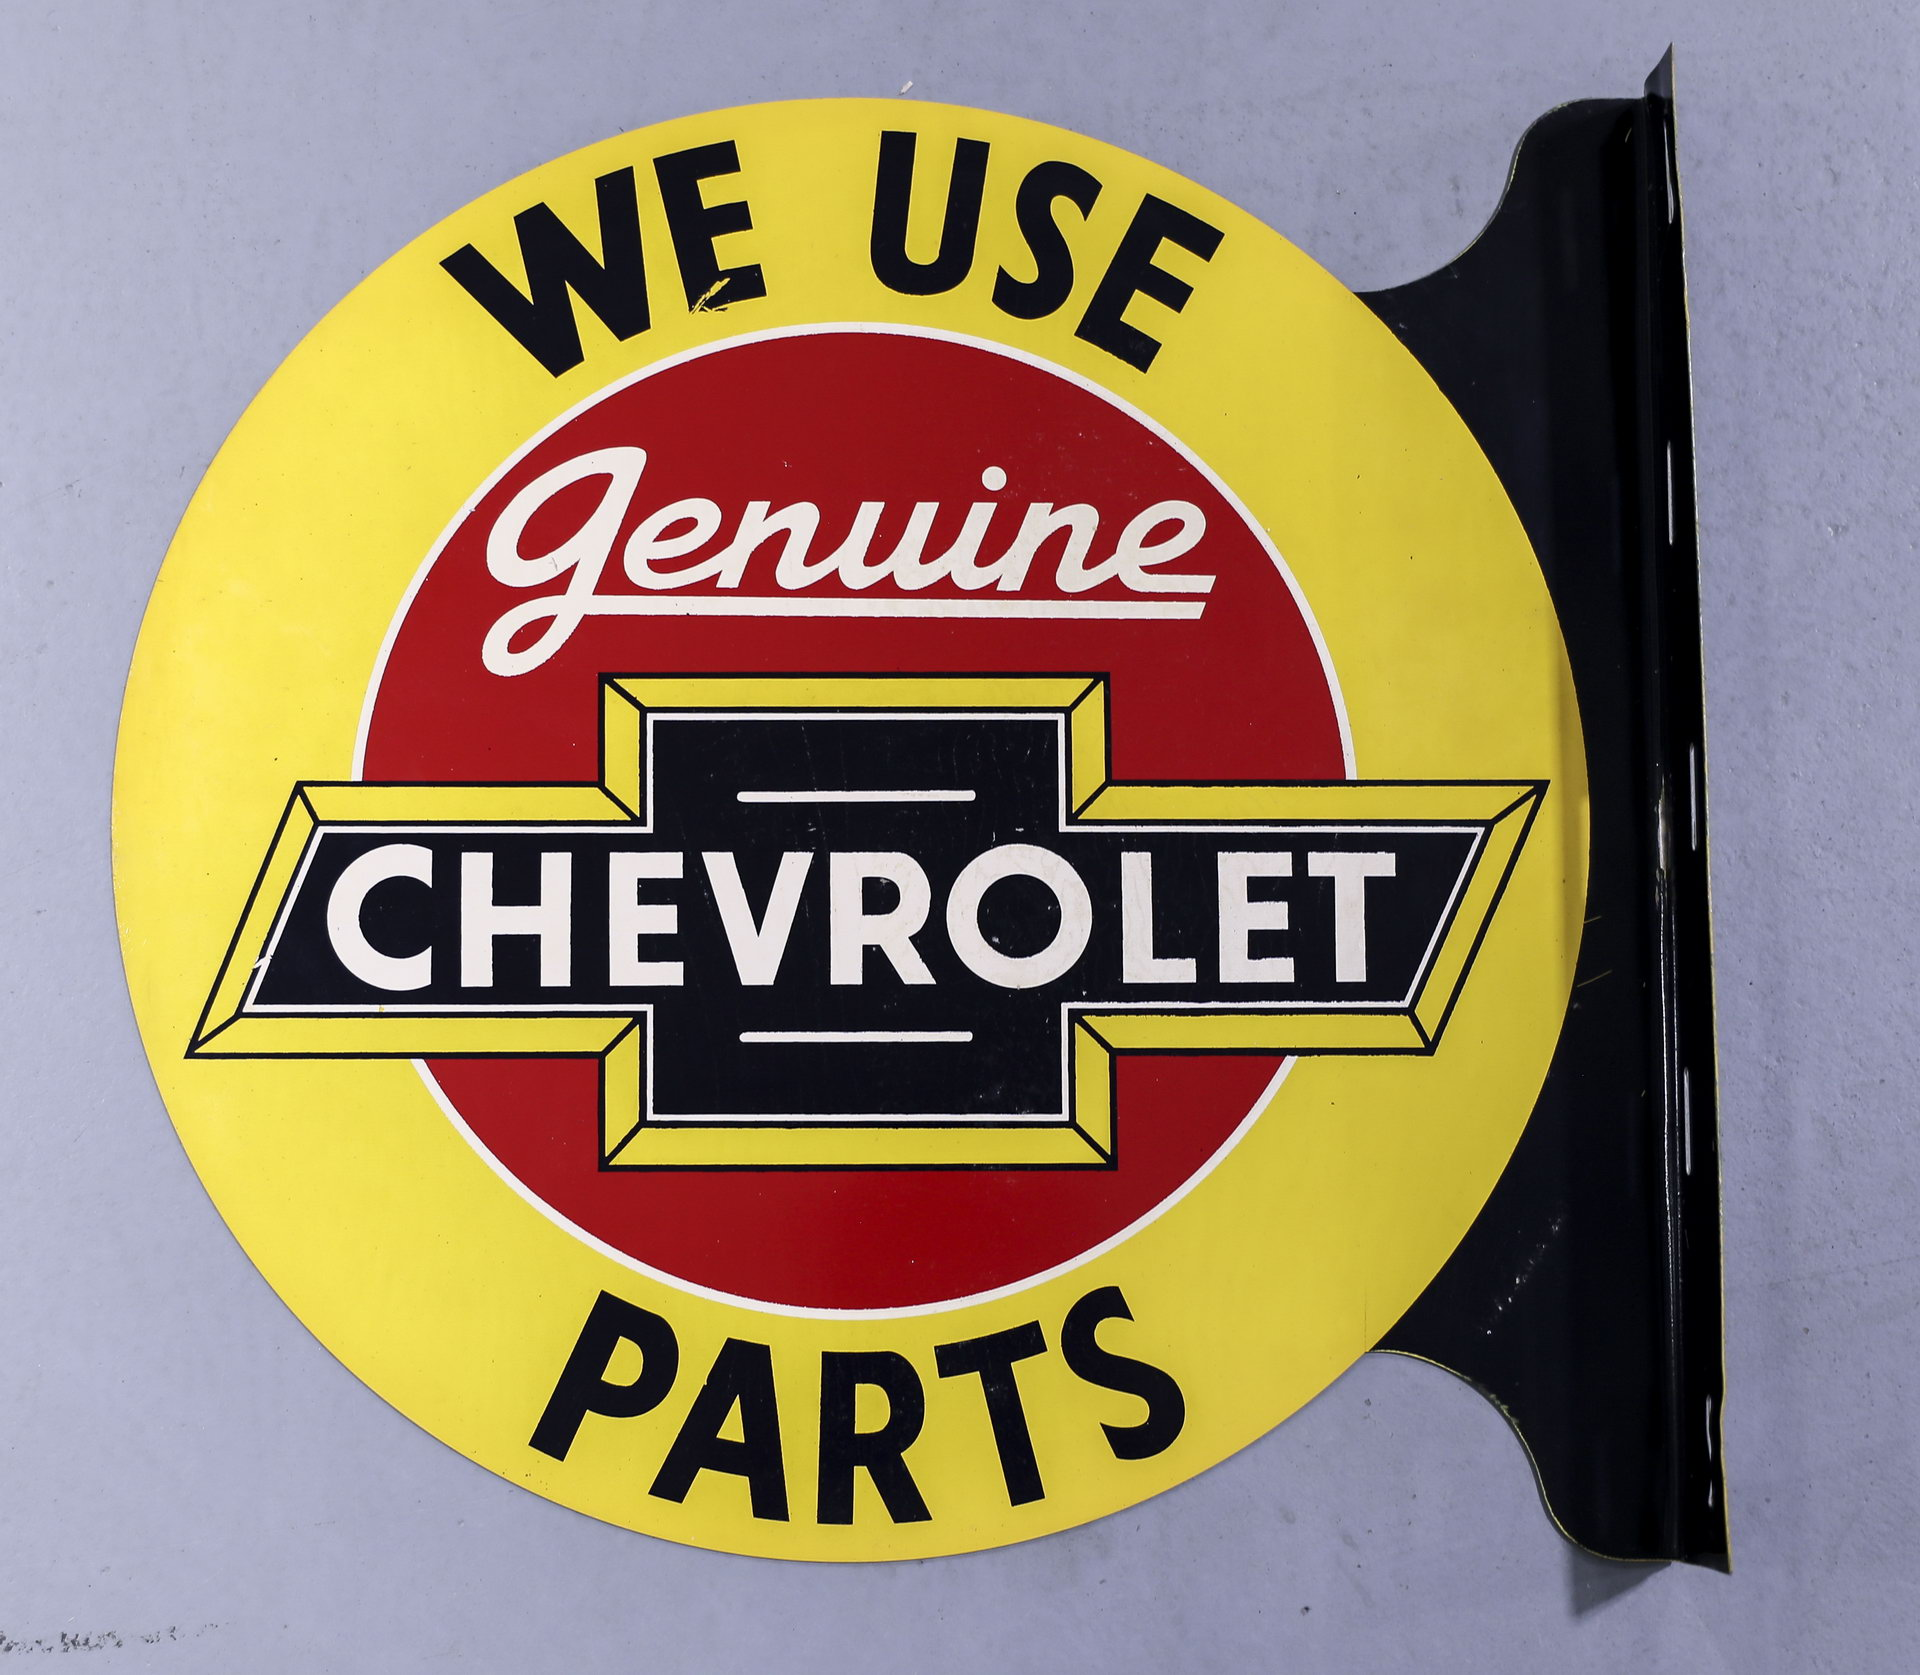 Chevrolet Genuine Parts DS Metal Flange Advertising Sign NOS with Box